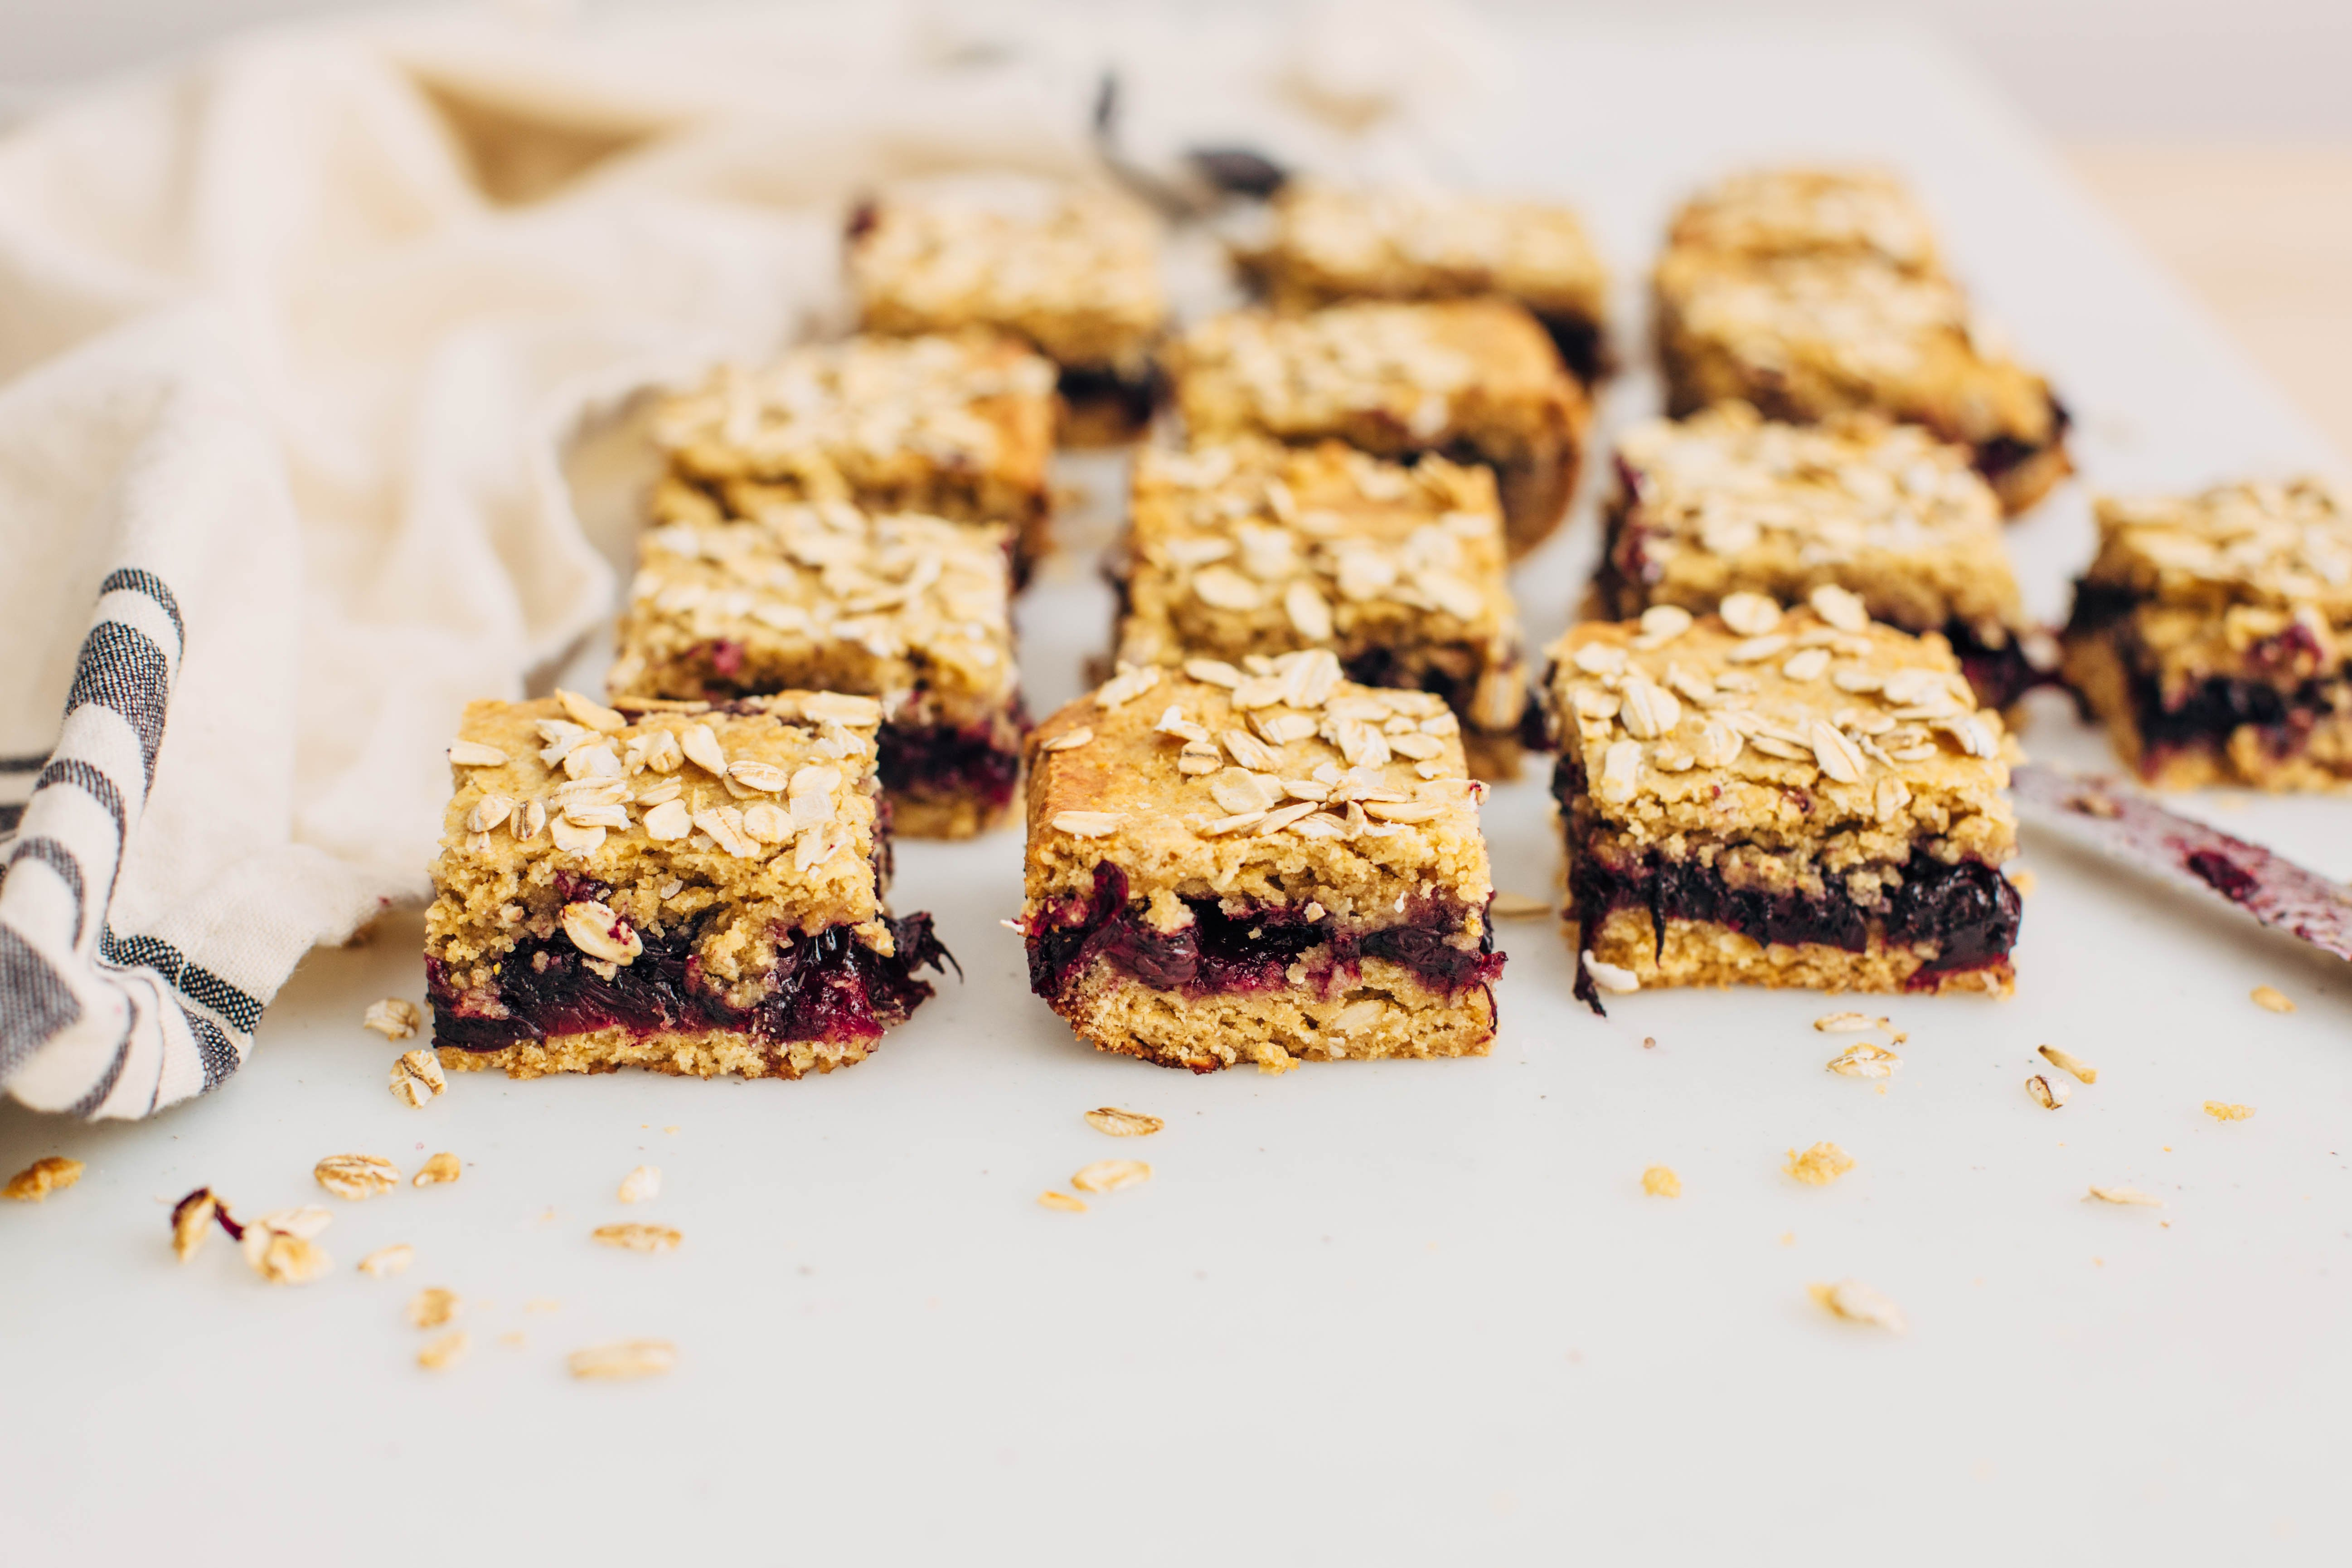 Homemade Blueberry Cookie Bars